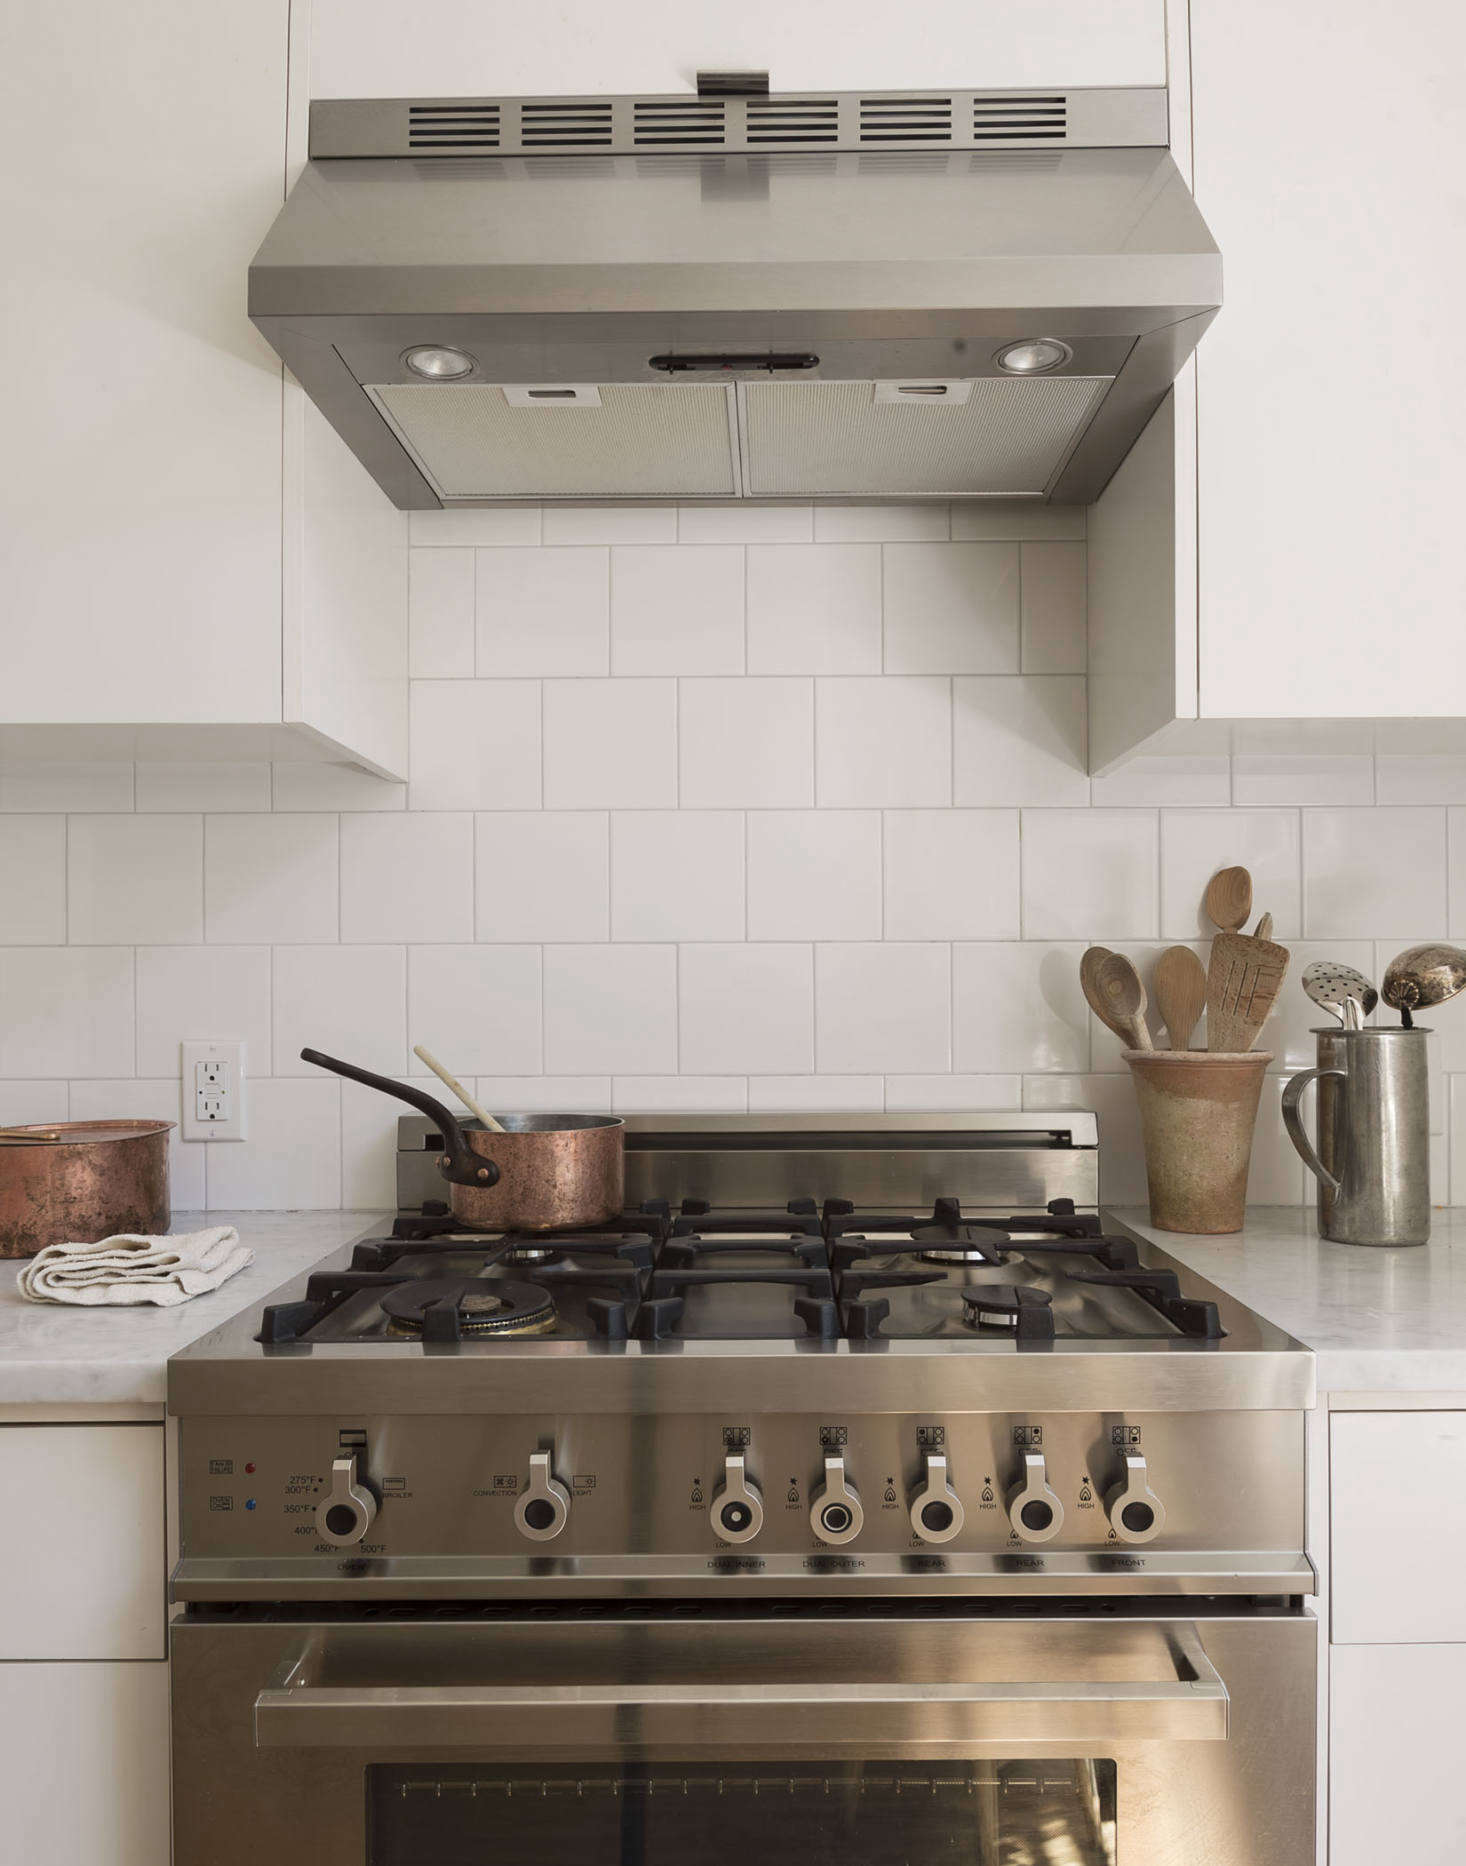 We chose a Bertazzoni PRO304GASX Range for its good looks and relatively slim profile (compared to a Wolf or a Viking).